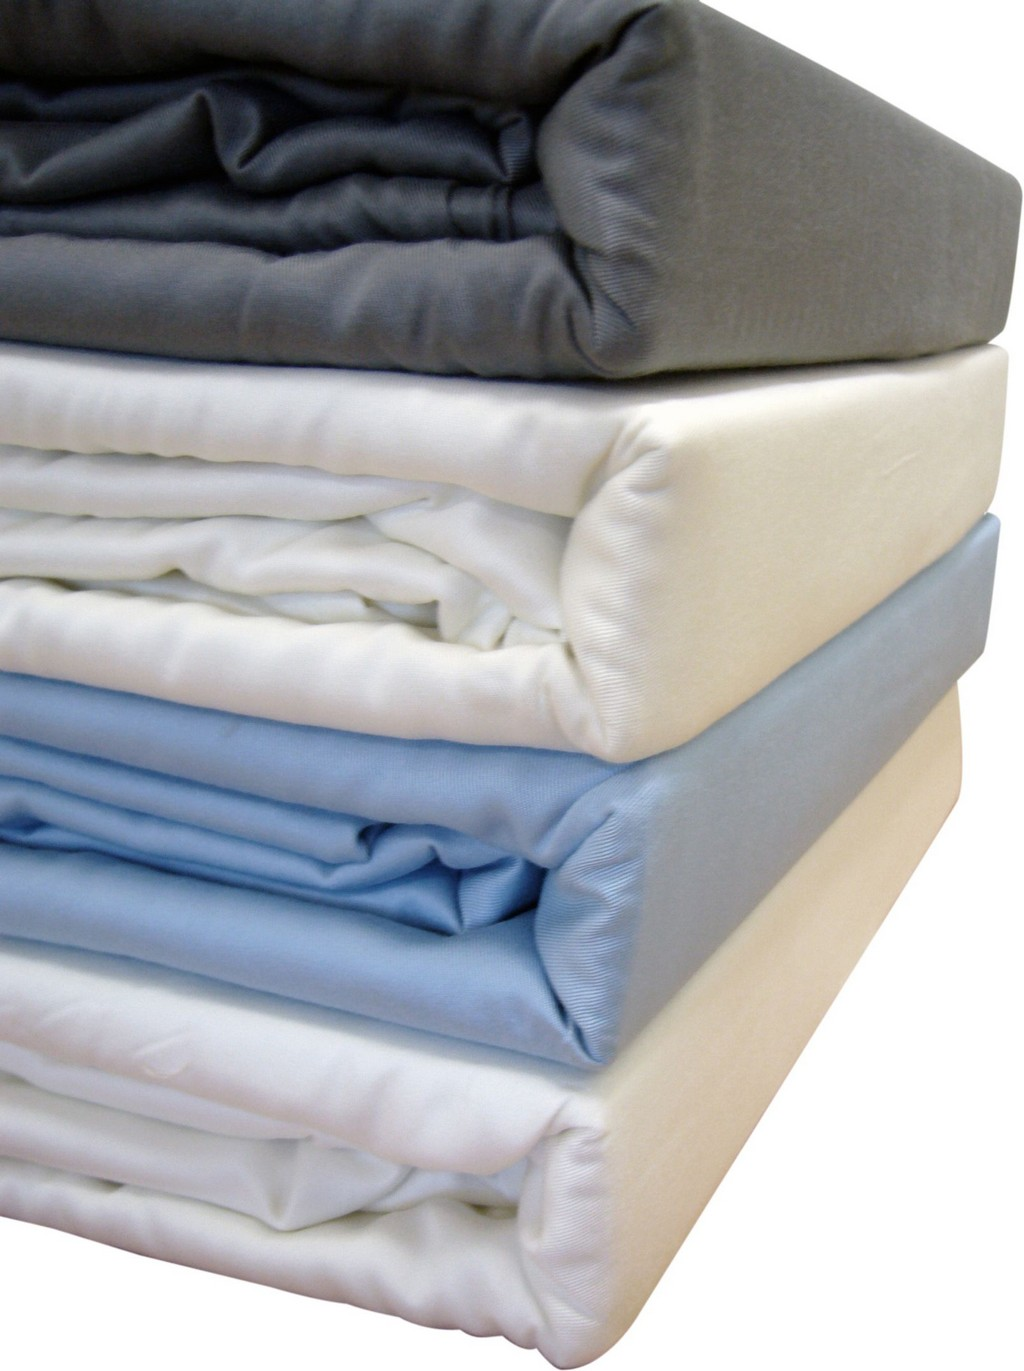 irish linen, linen rentals, bed linen, irish linen fabric